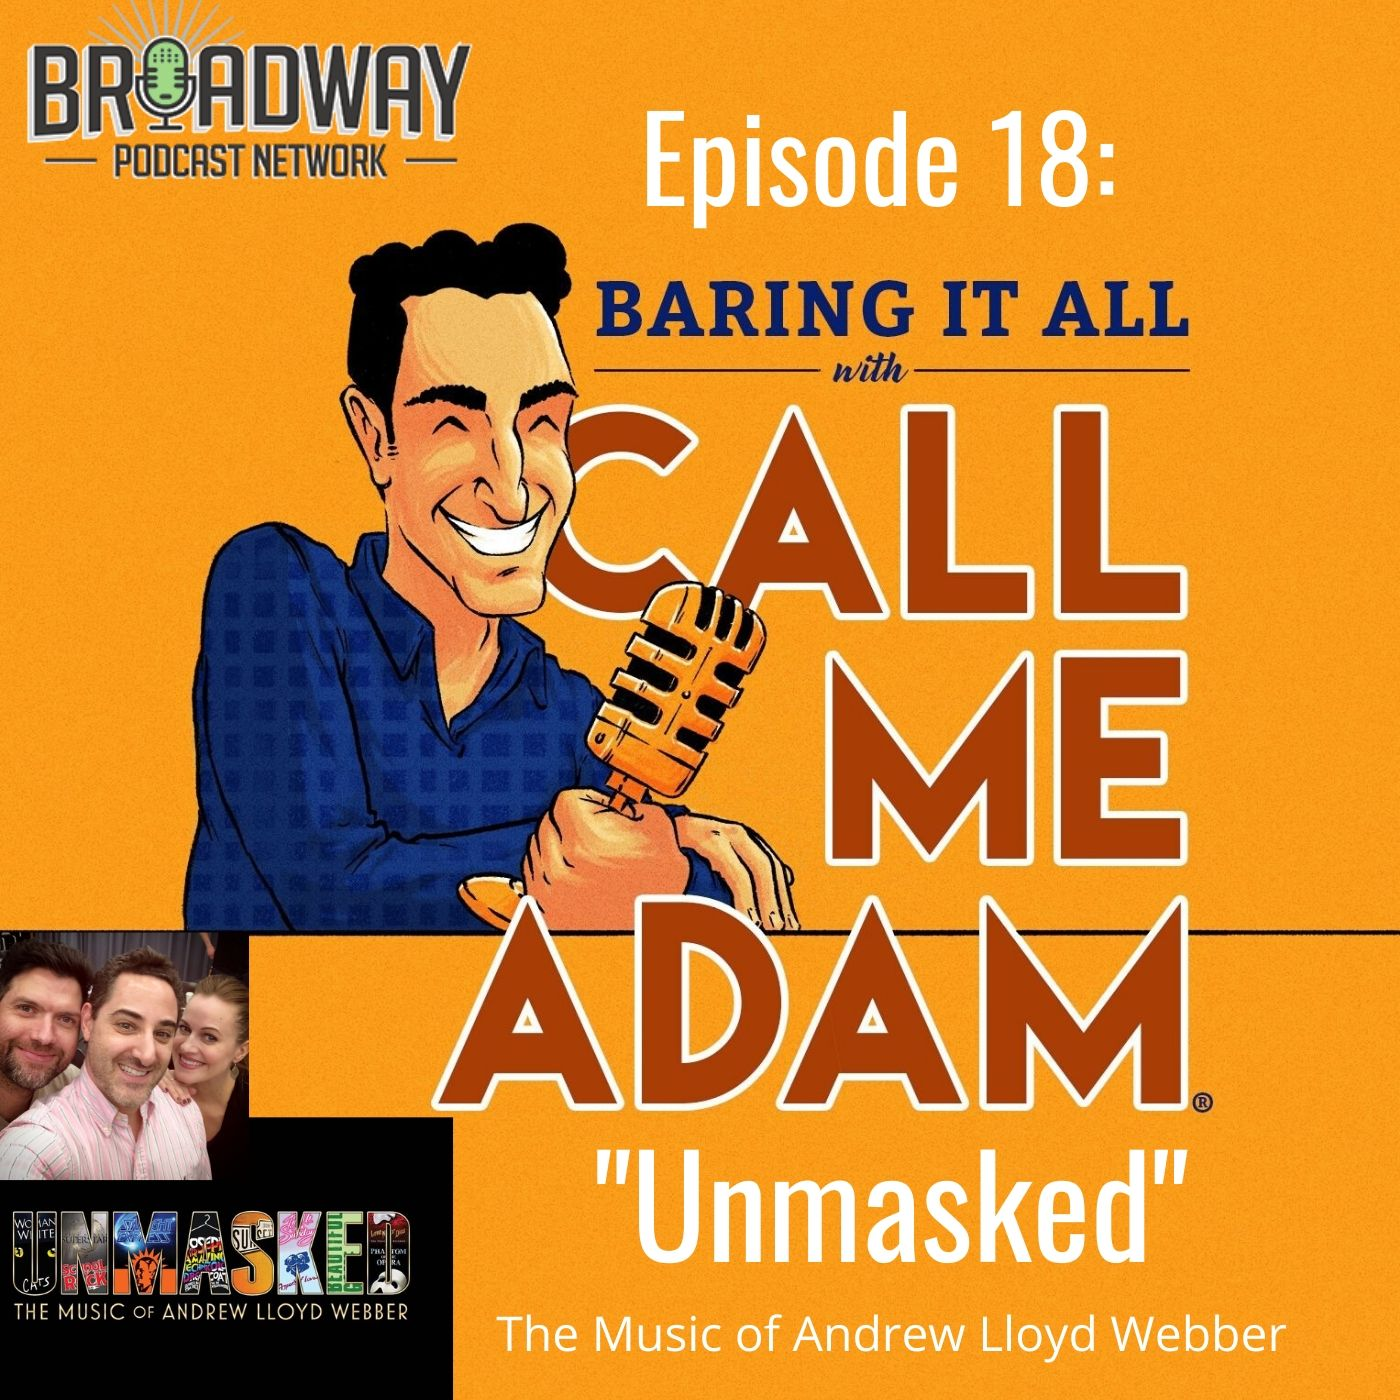 Baring It All With Call Me Adam Ep 18 Unmasked